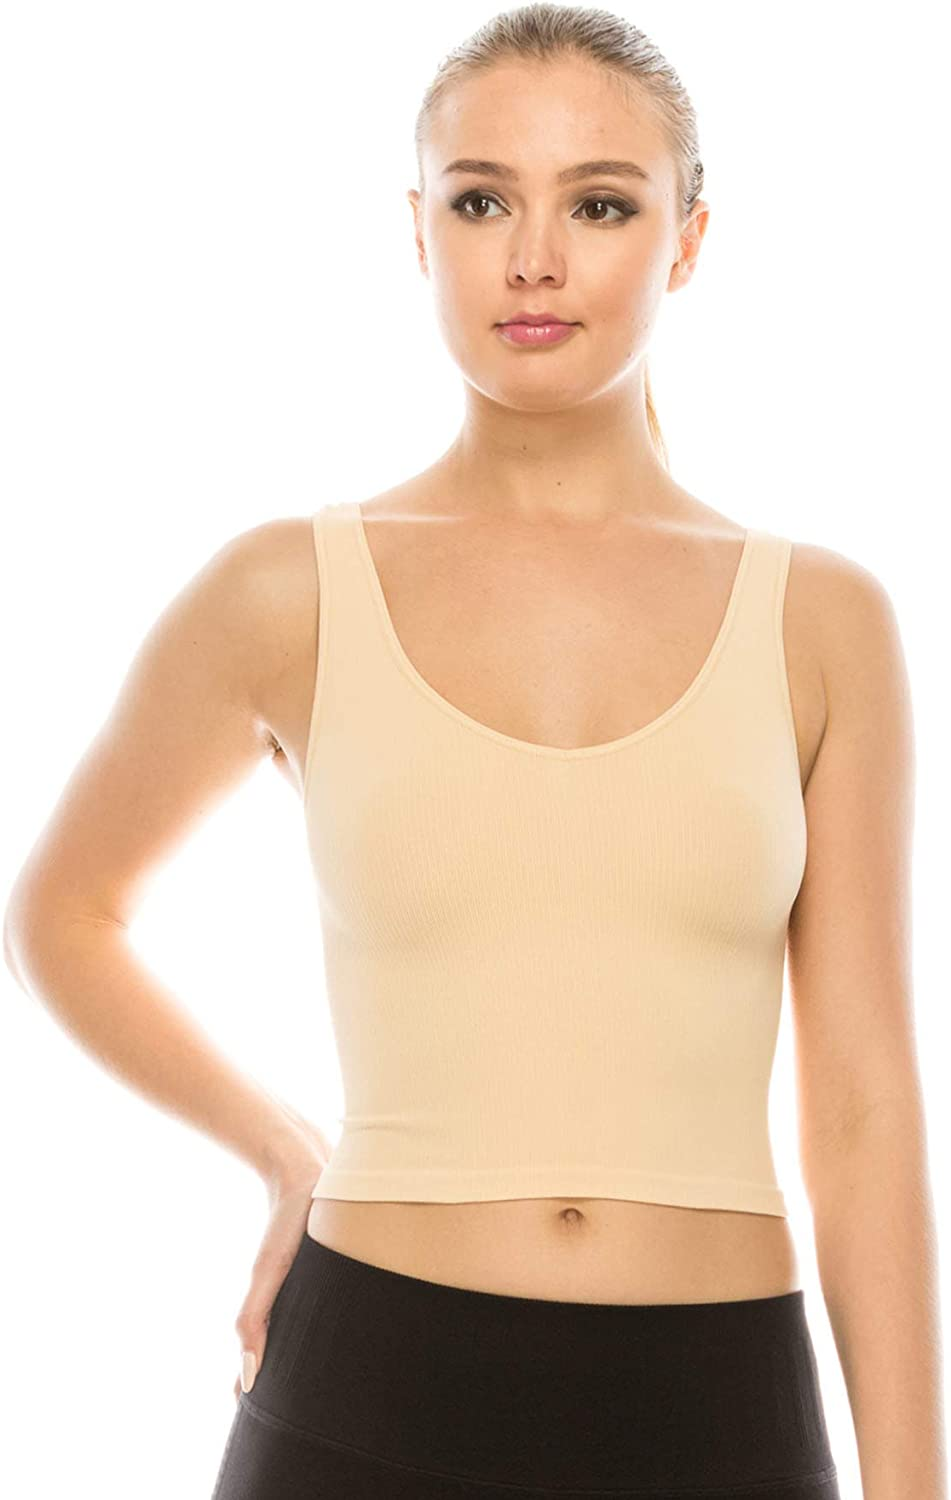 Kurve Women's Crop Tank Top – Sleeveless Ribbed Seamless Cropped Yoga Workout Cami UV Protective Fabric UPF 50+ Made in USA